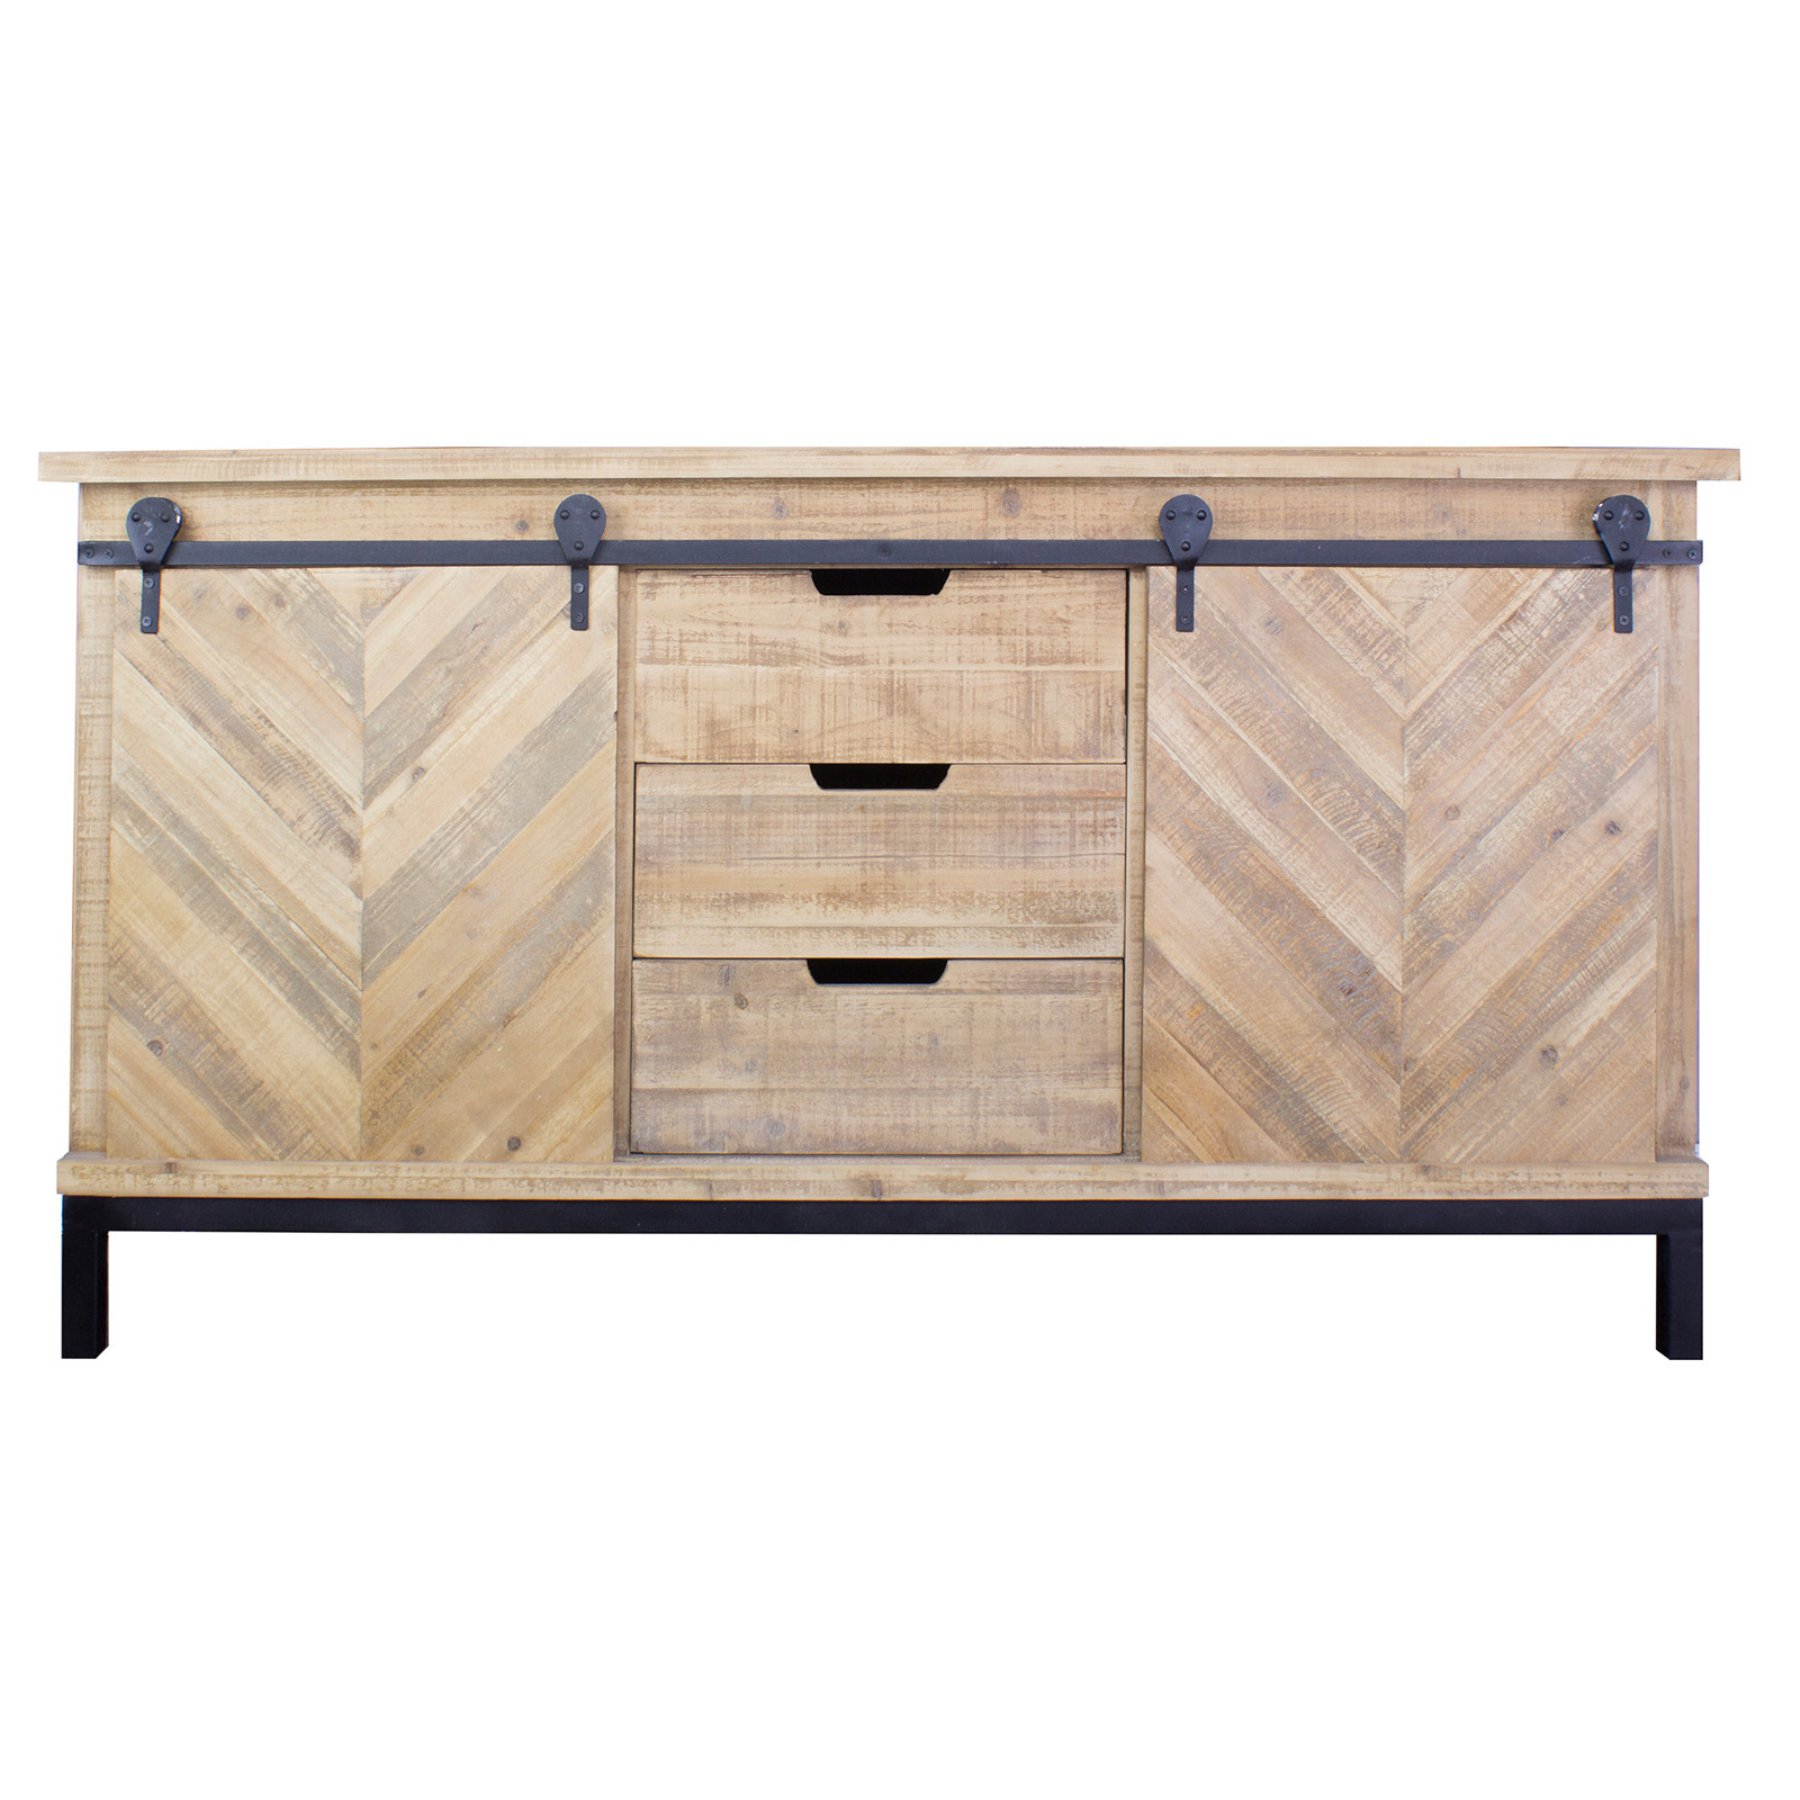 Heather Ann Creations Knightsbridge Collection Buffet with Avenal Sideboards (Image 21 of 30)